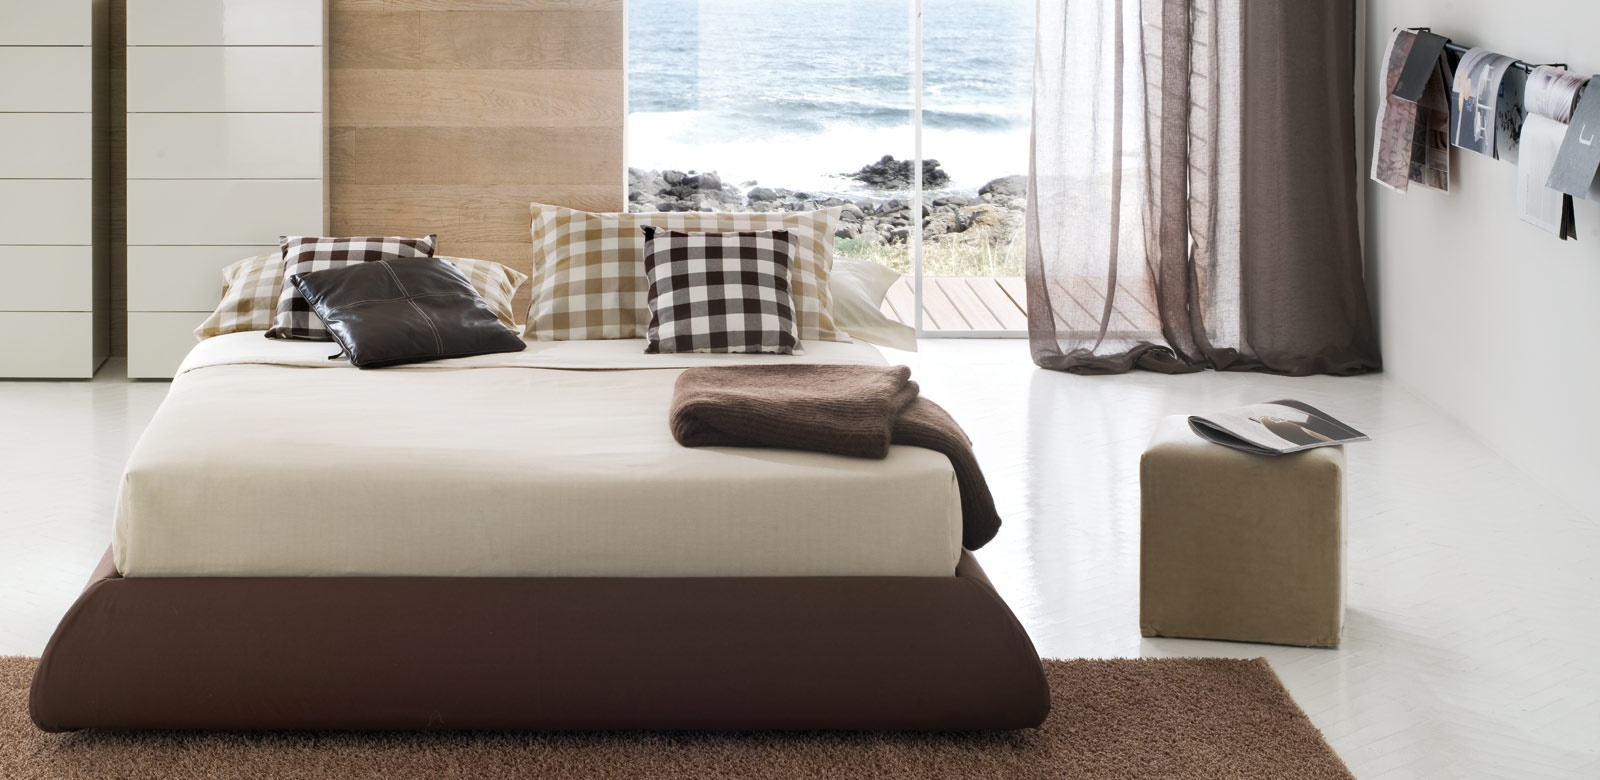 Bed sommier pear altrenotti luxury furniture mr - Characteristics of contemporary platform beds ...